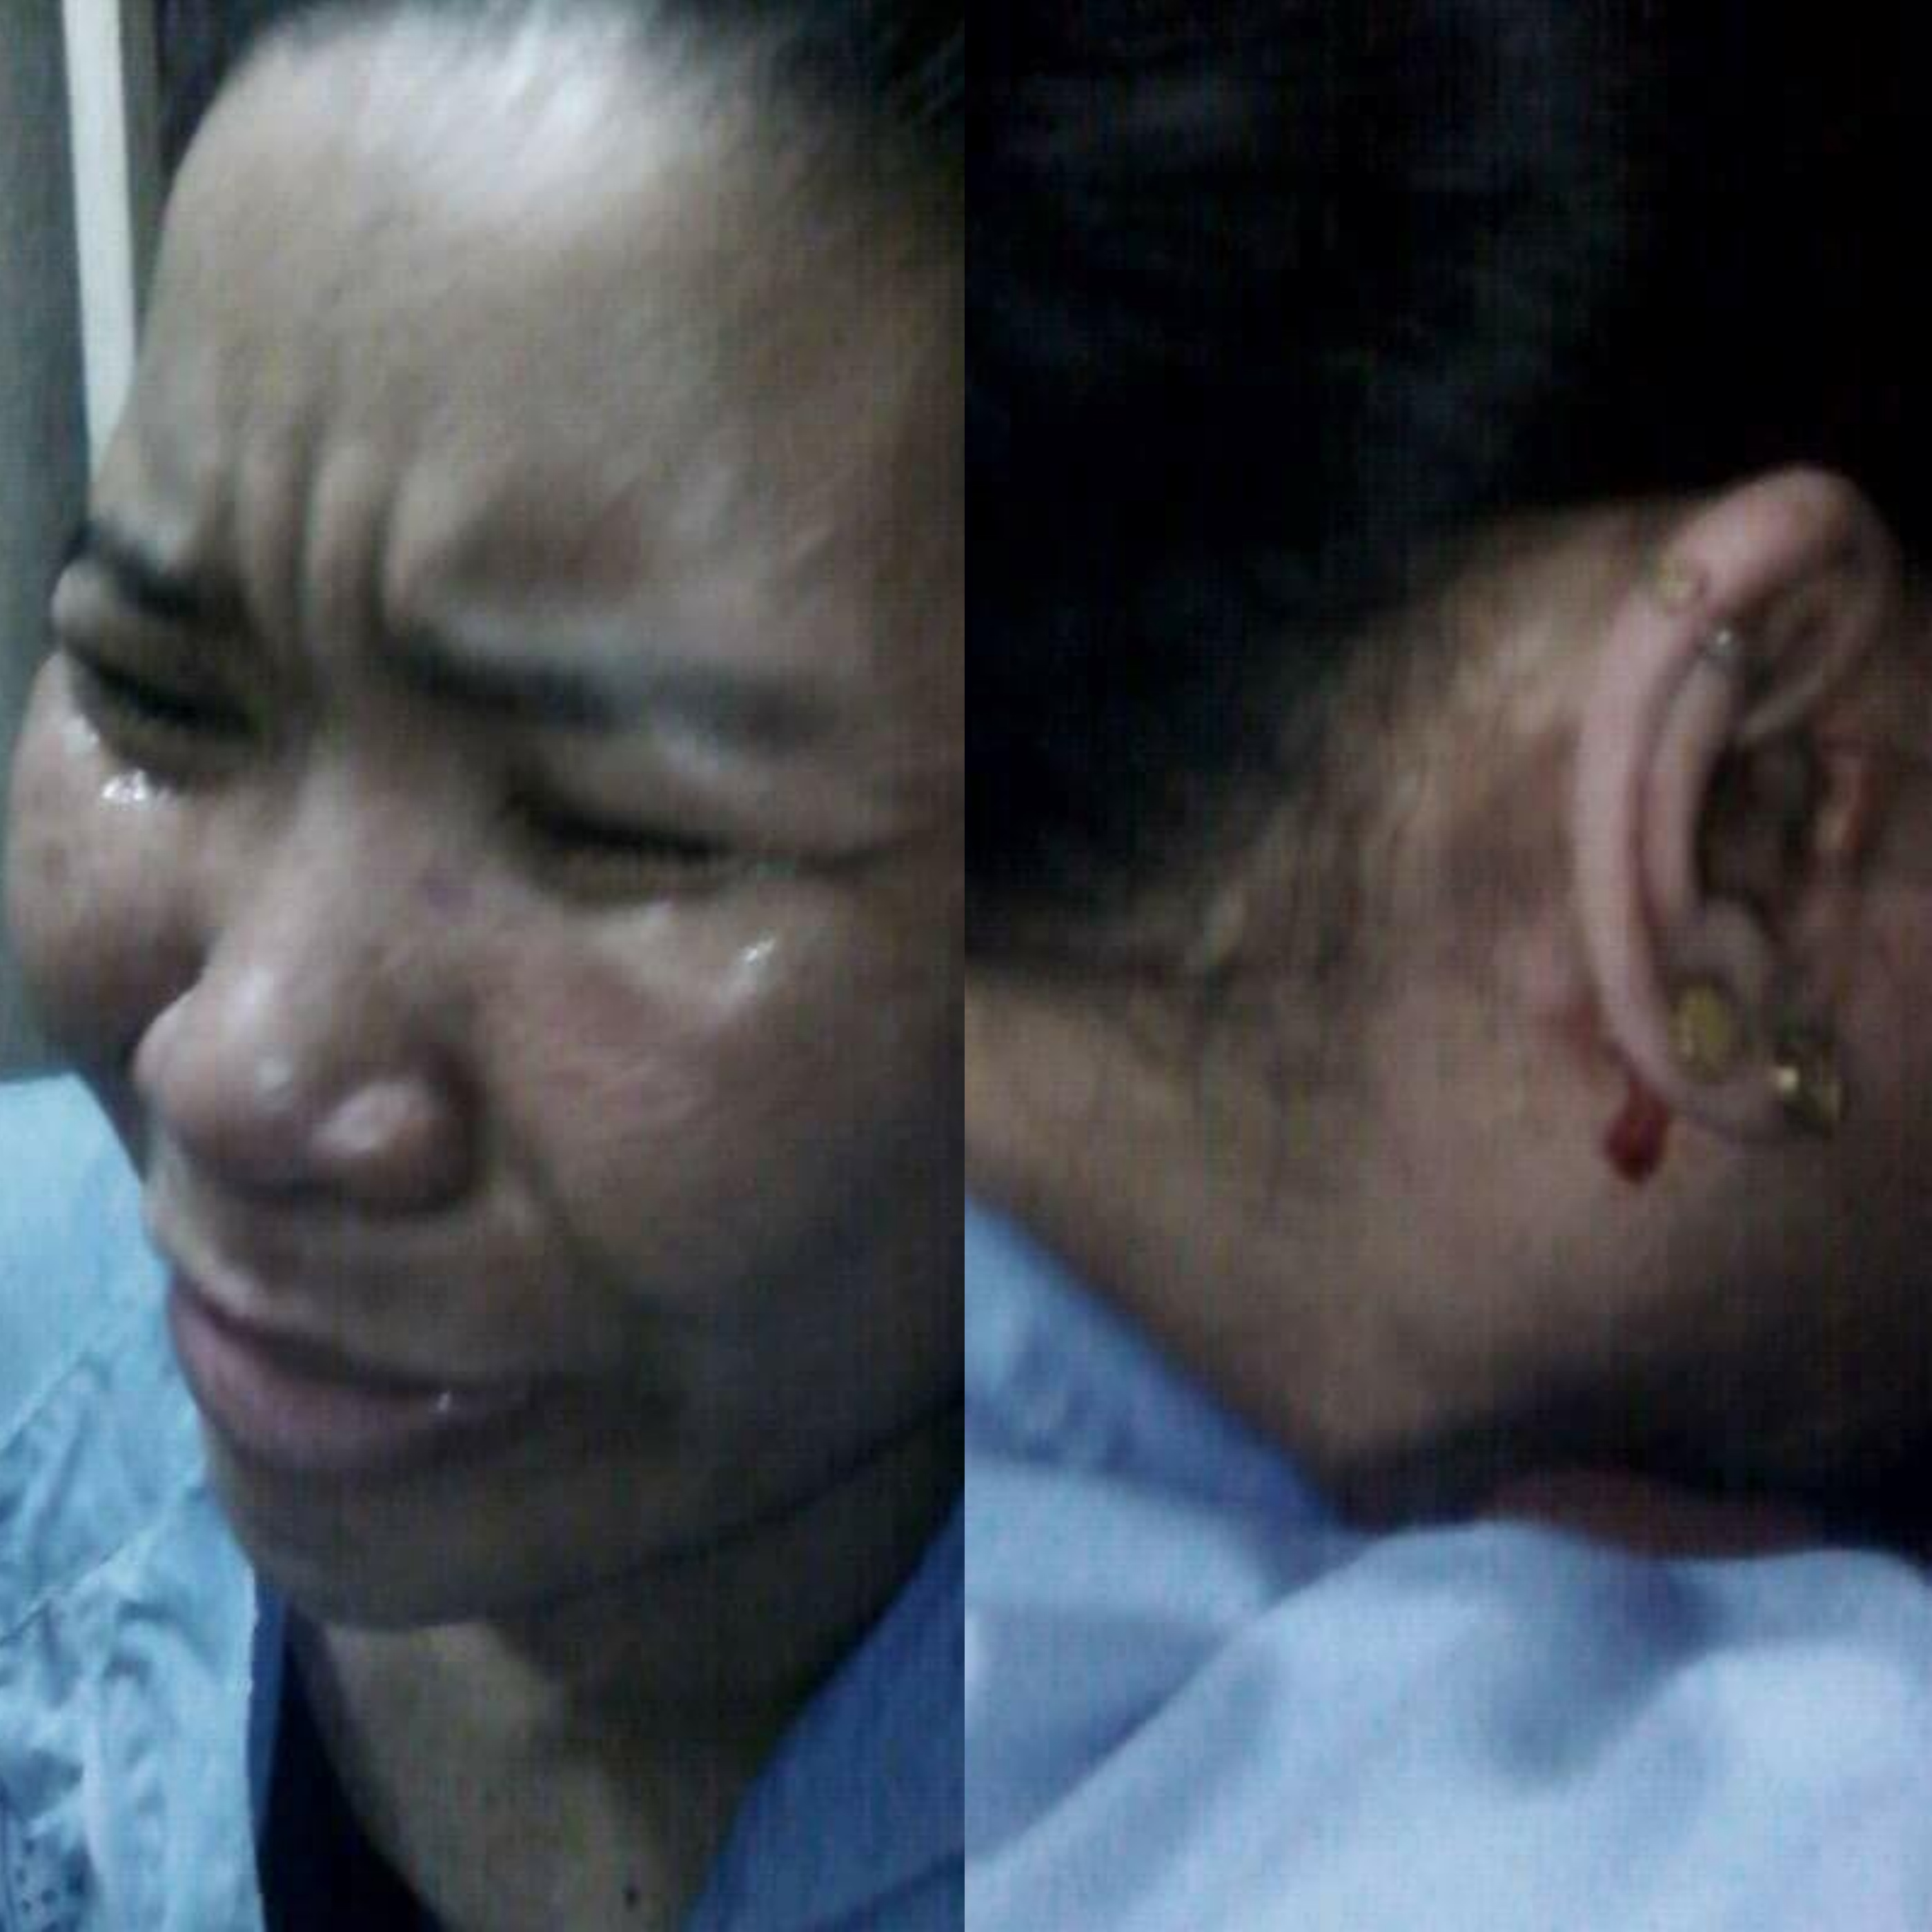 An OFW in Saudi Arabia is now crying for help since her employer might kill her. [Image Credit: OFW CCTV / Facebook]